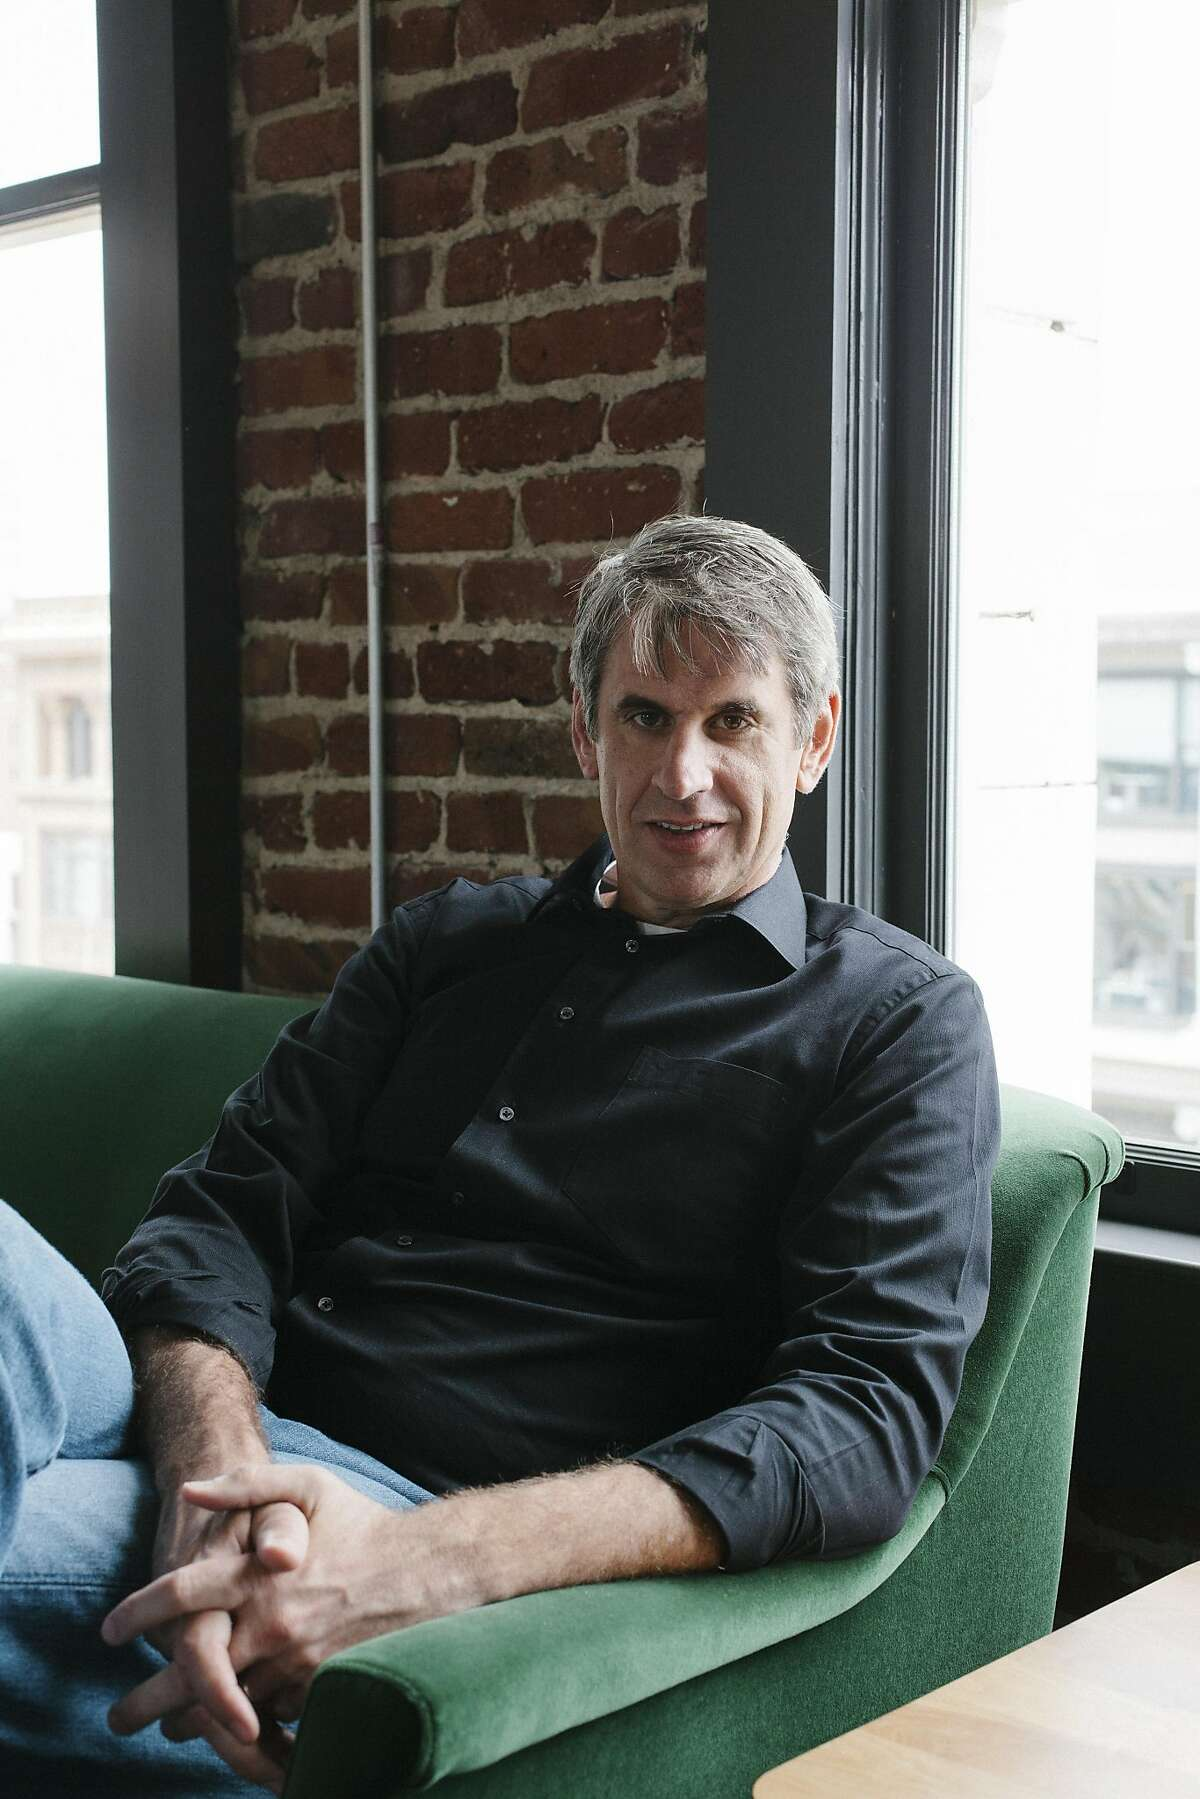 FILE � The venture capitalist Bill Gurley in San Francisco, May 21, 2015. Gurley has demonstrated a knack for backing companies that make big money once they go public. He is one of the biggest investors in Uber. (Peter Earl McCollough/The New York Times)